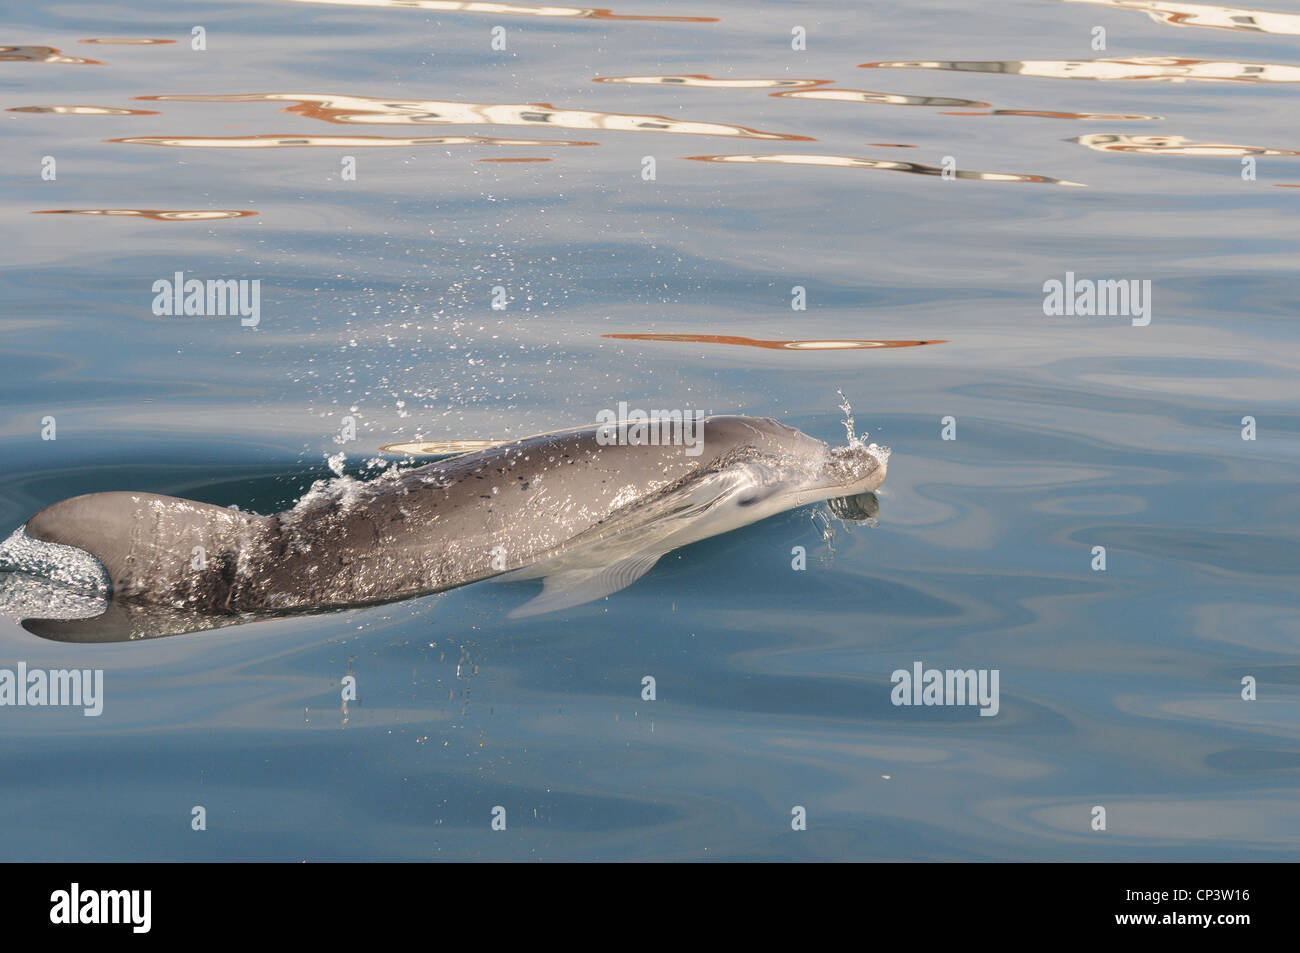 bottlenosed dolphin in sardinian waters under the water following the boat, La Maddalena , Sardinia, Italy - Stock Image